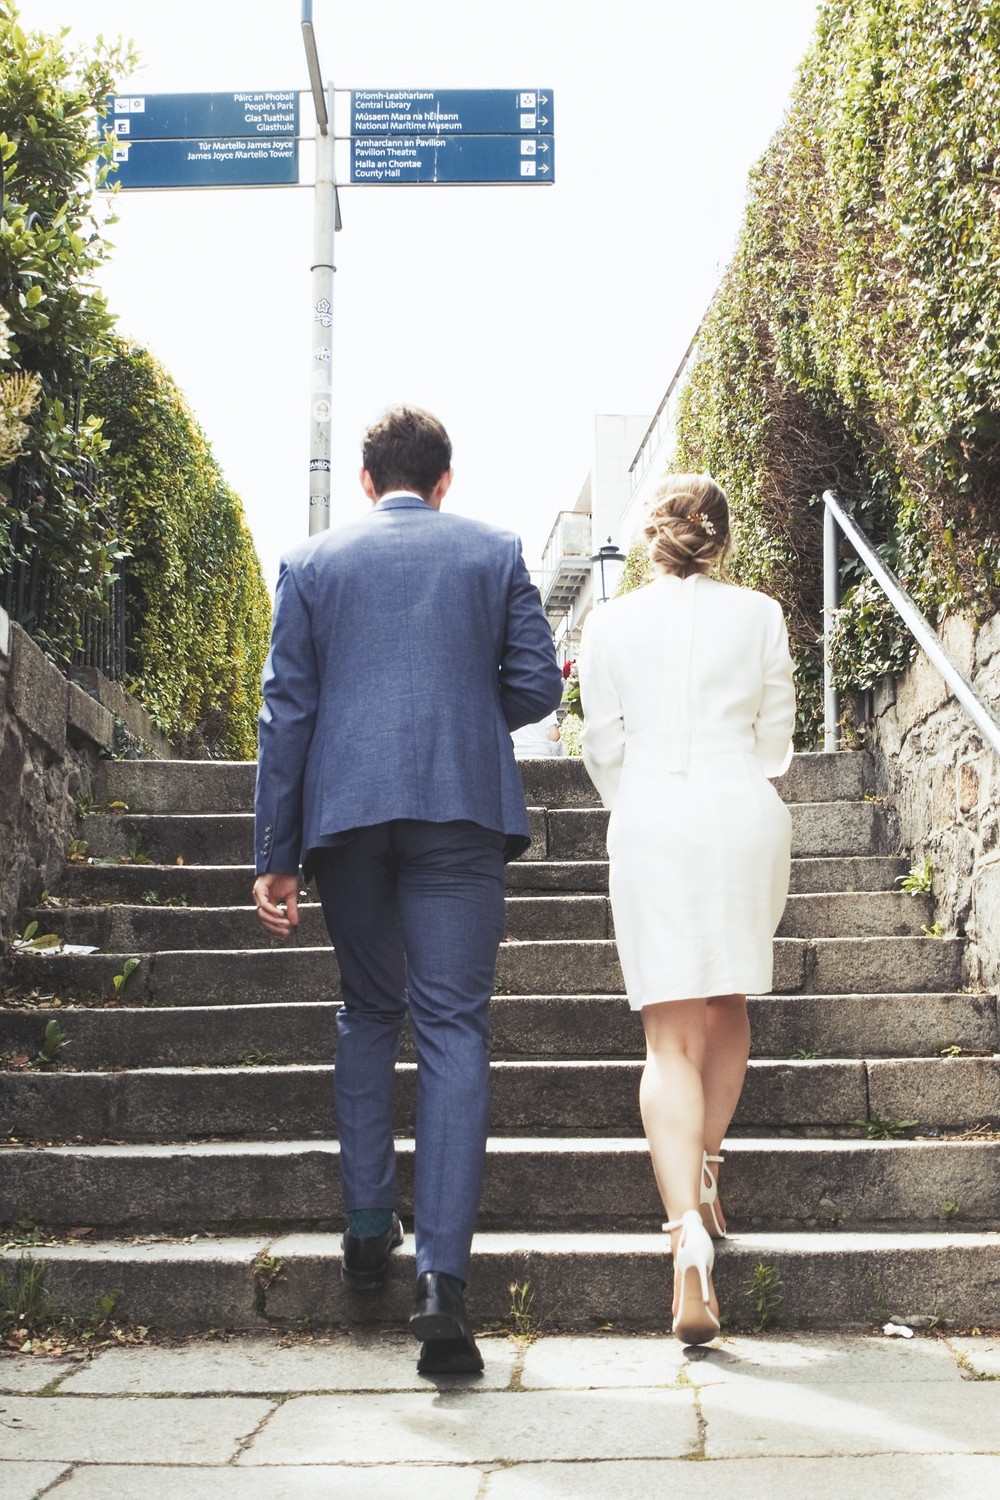 Relaxed & Modern Wedding Photography, Royal Hotel in Bray, Haddington Hotel in Dun Laoghaire. Ireland Wedding